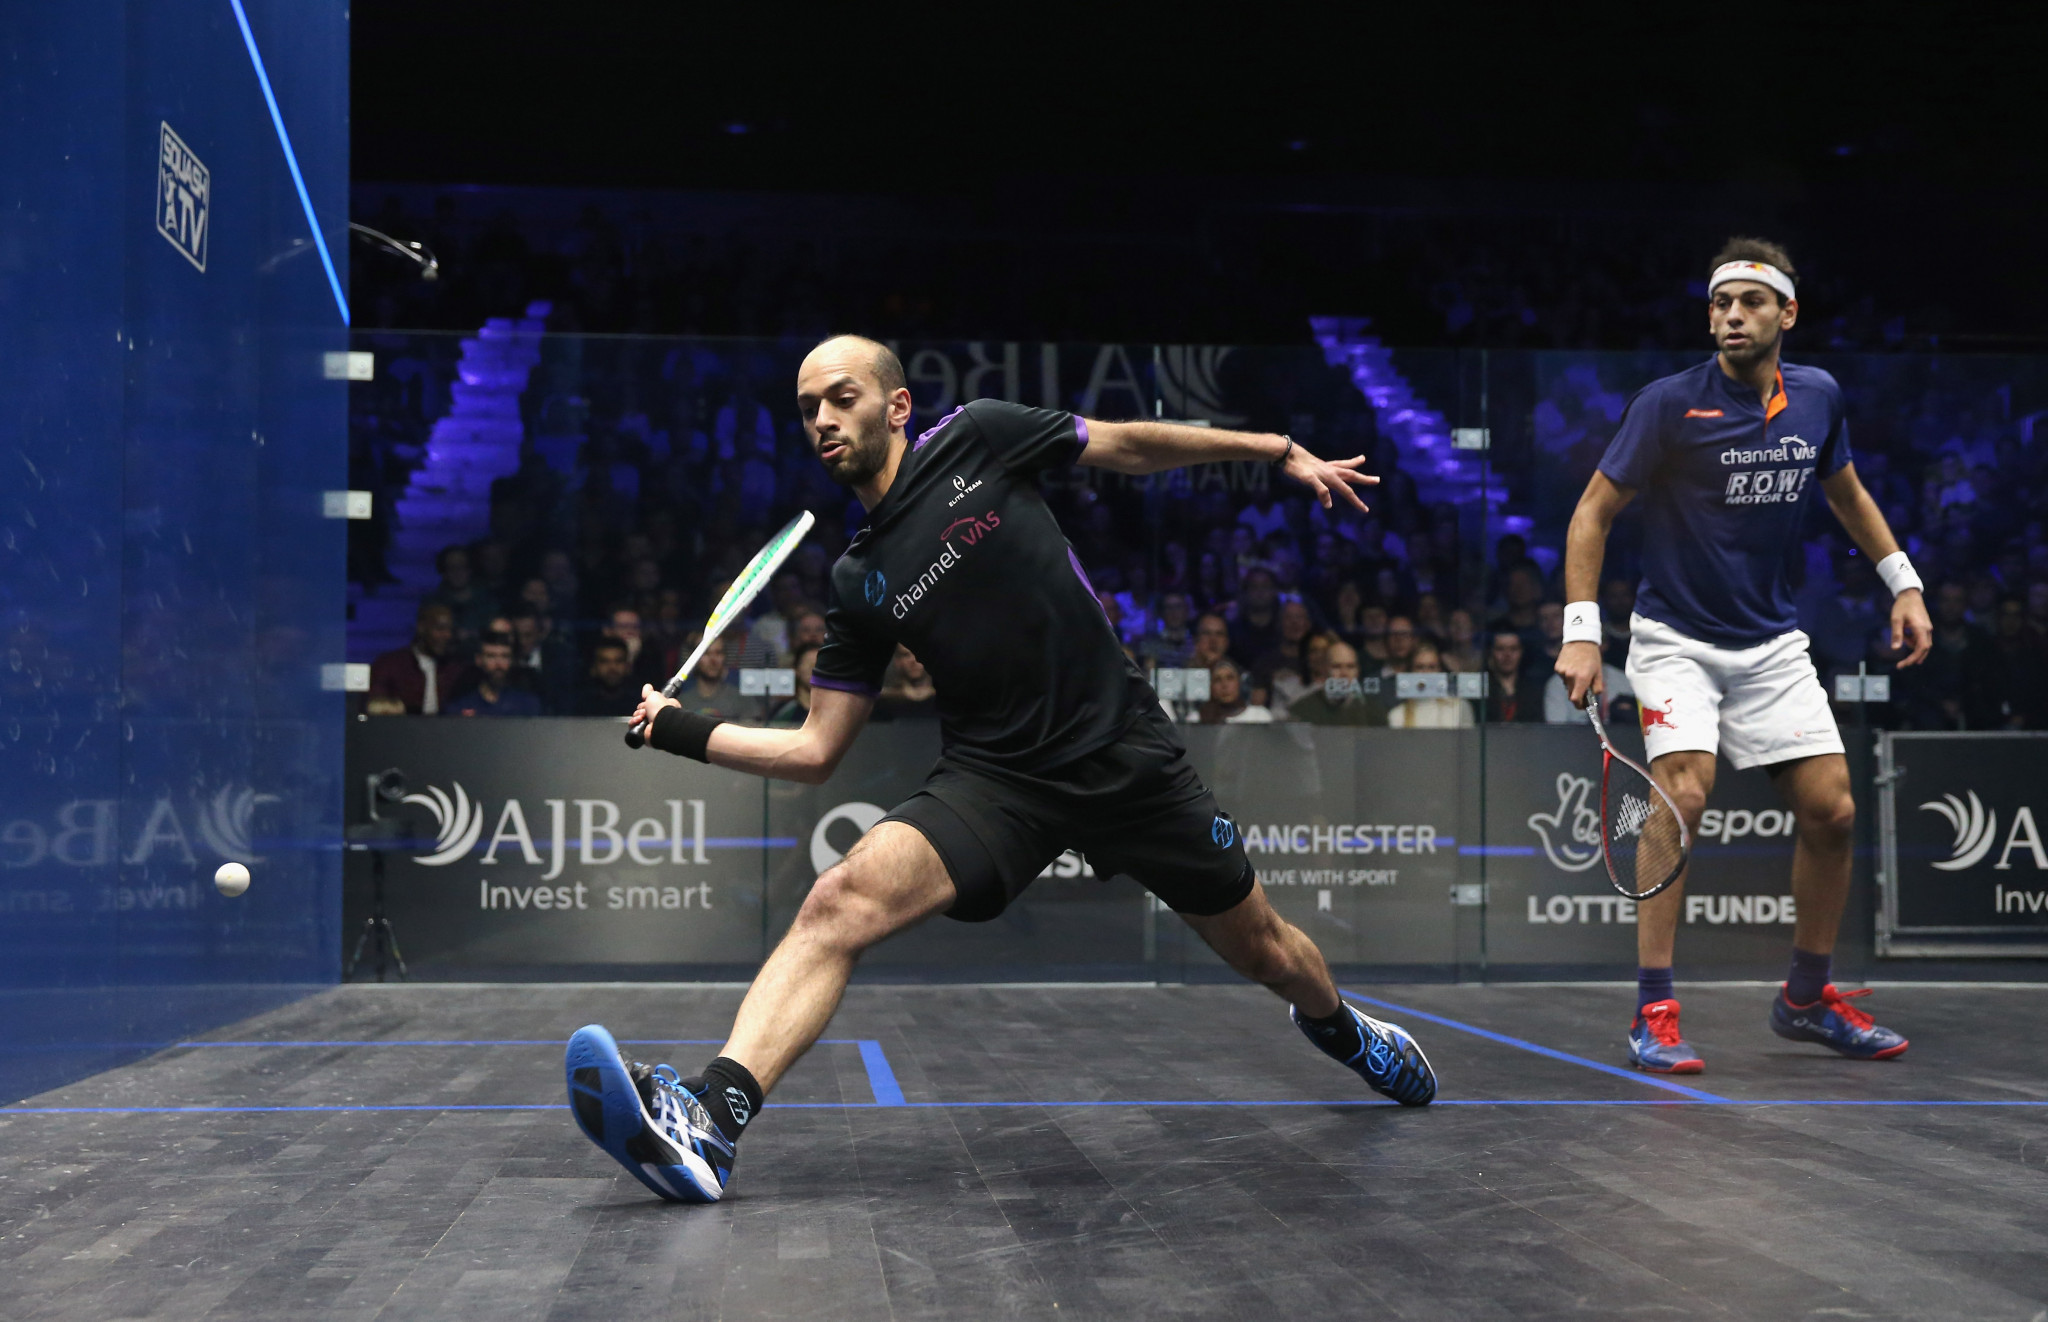 Egyptian squash player Marwan Elshorbagy cleared after anti-doping investigation